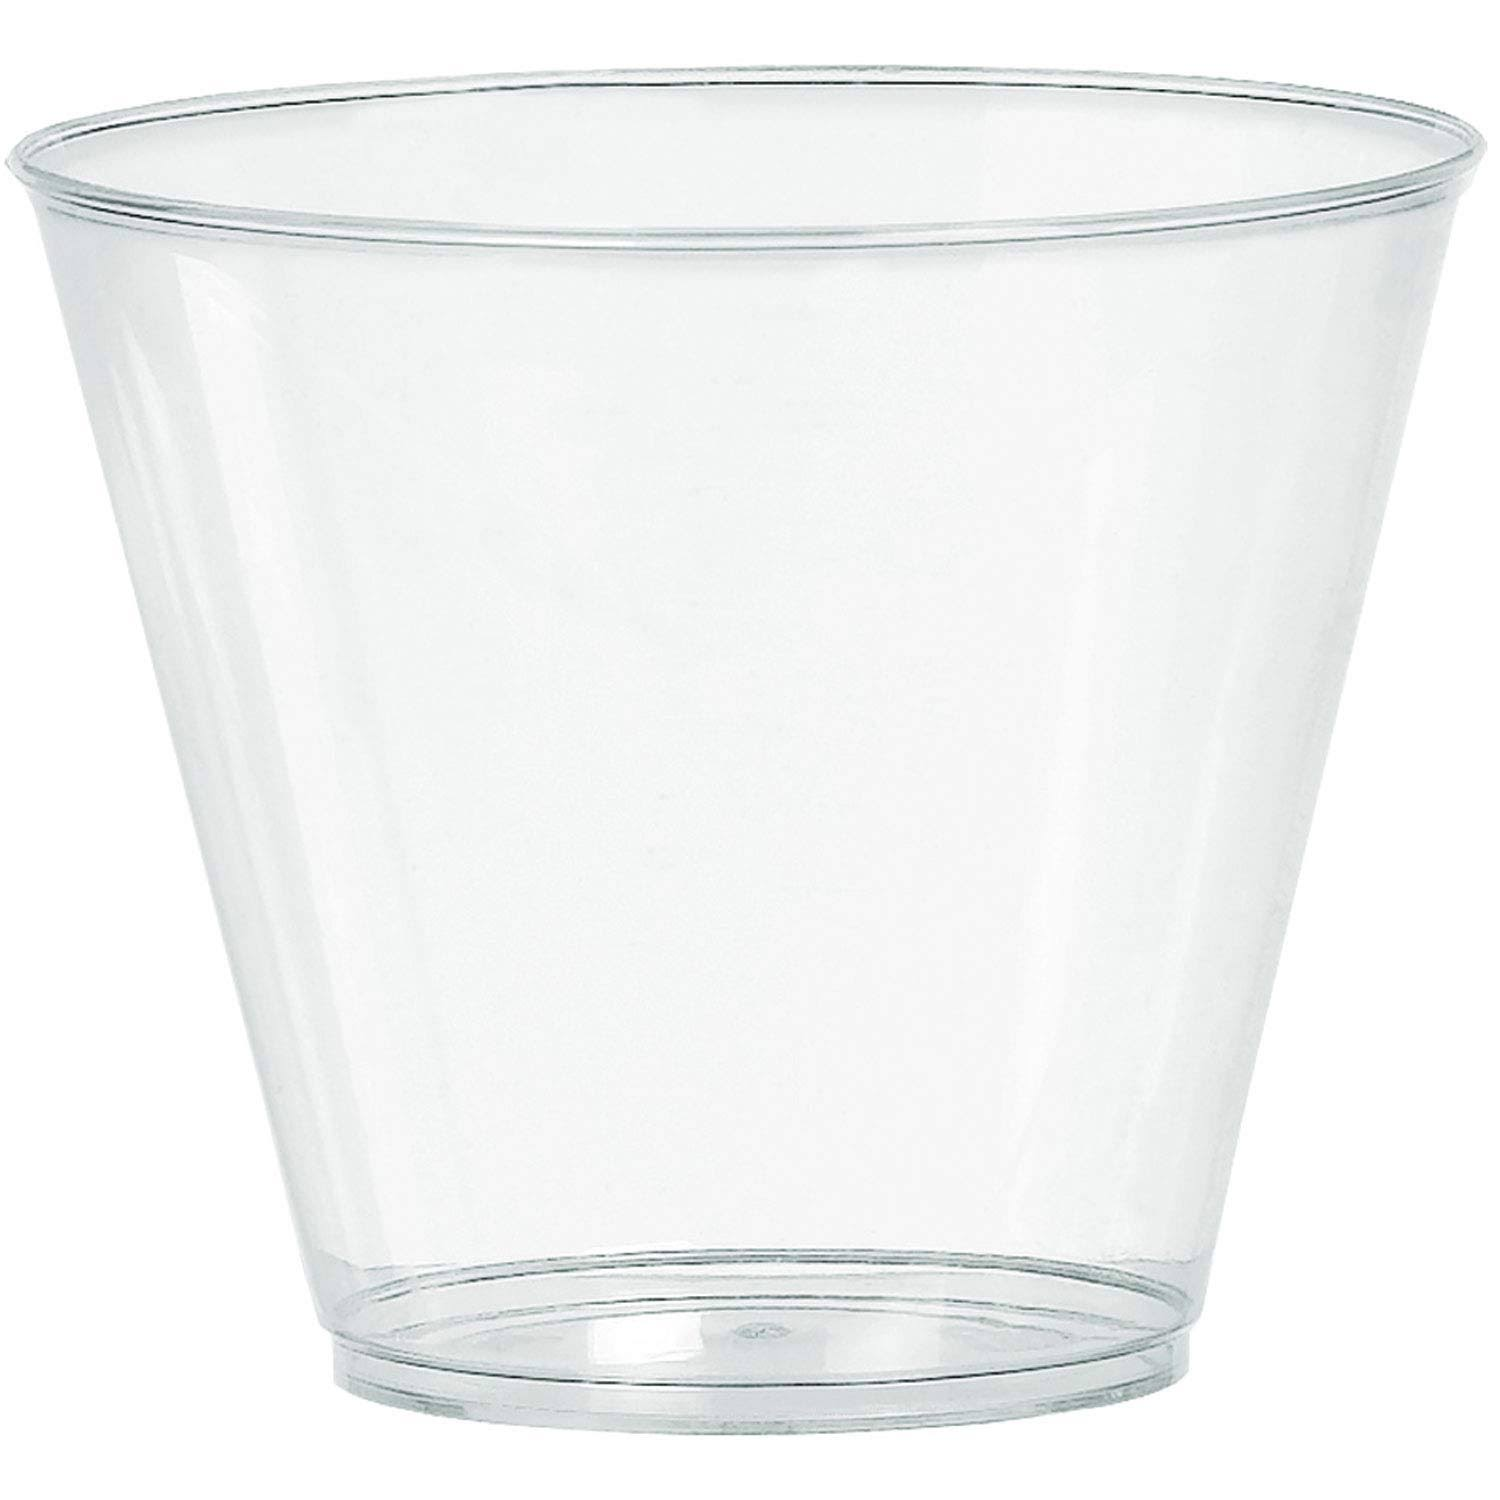 Amscan Plastic Tumblers - Clear, 266ml, Pack of 20